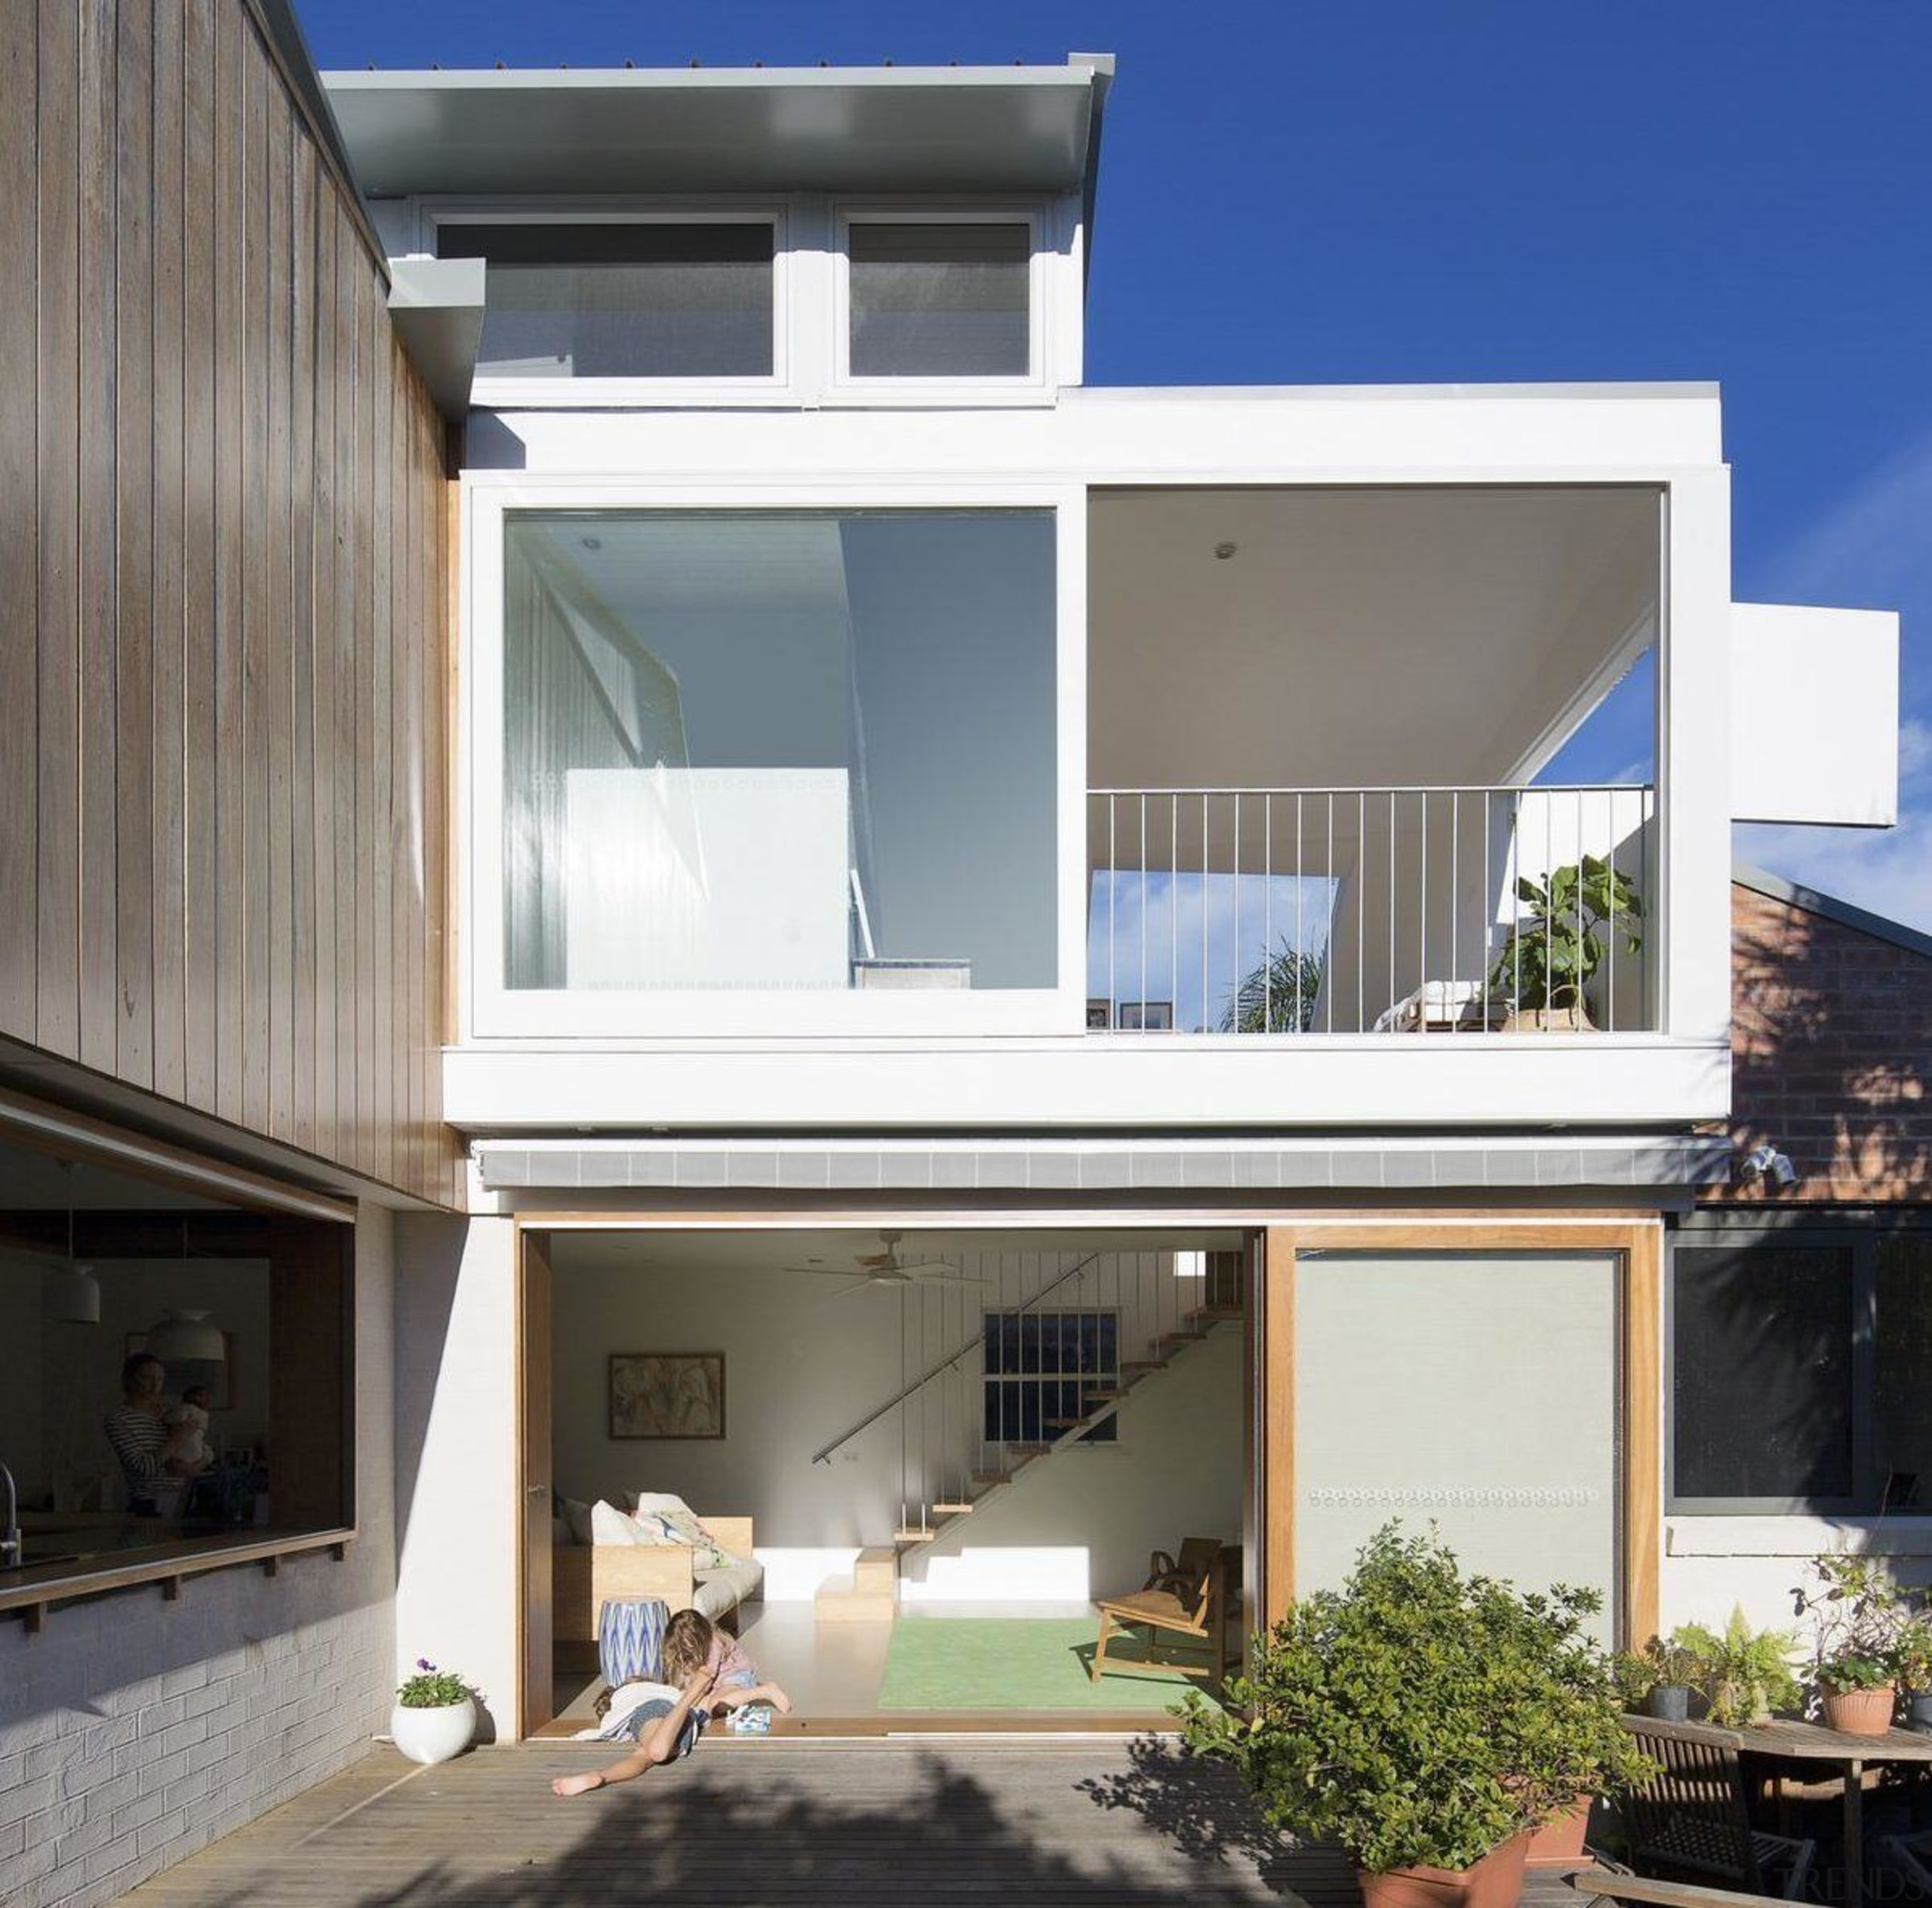 The architects certainly pulled off an impressive renovation architecture, building, elevation, facade, home, house, property, real estate, residential area, roof, blue